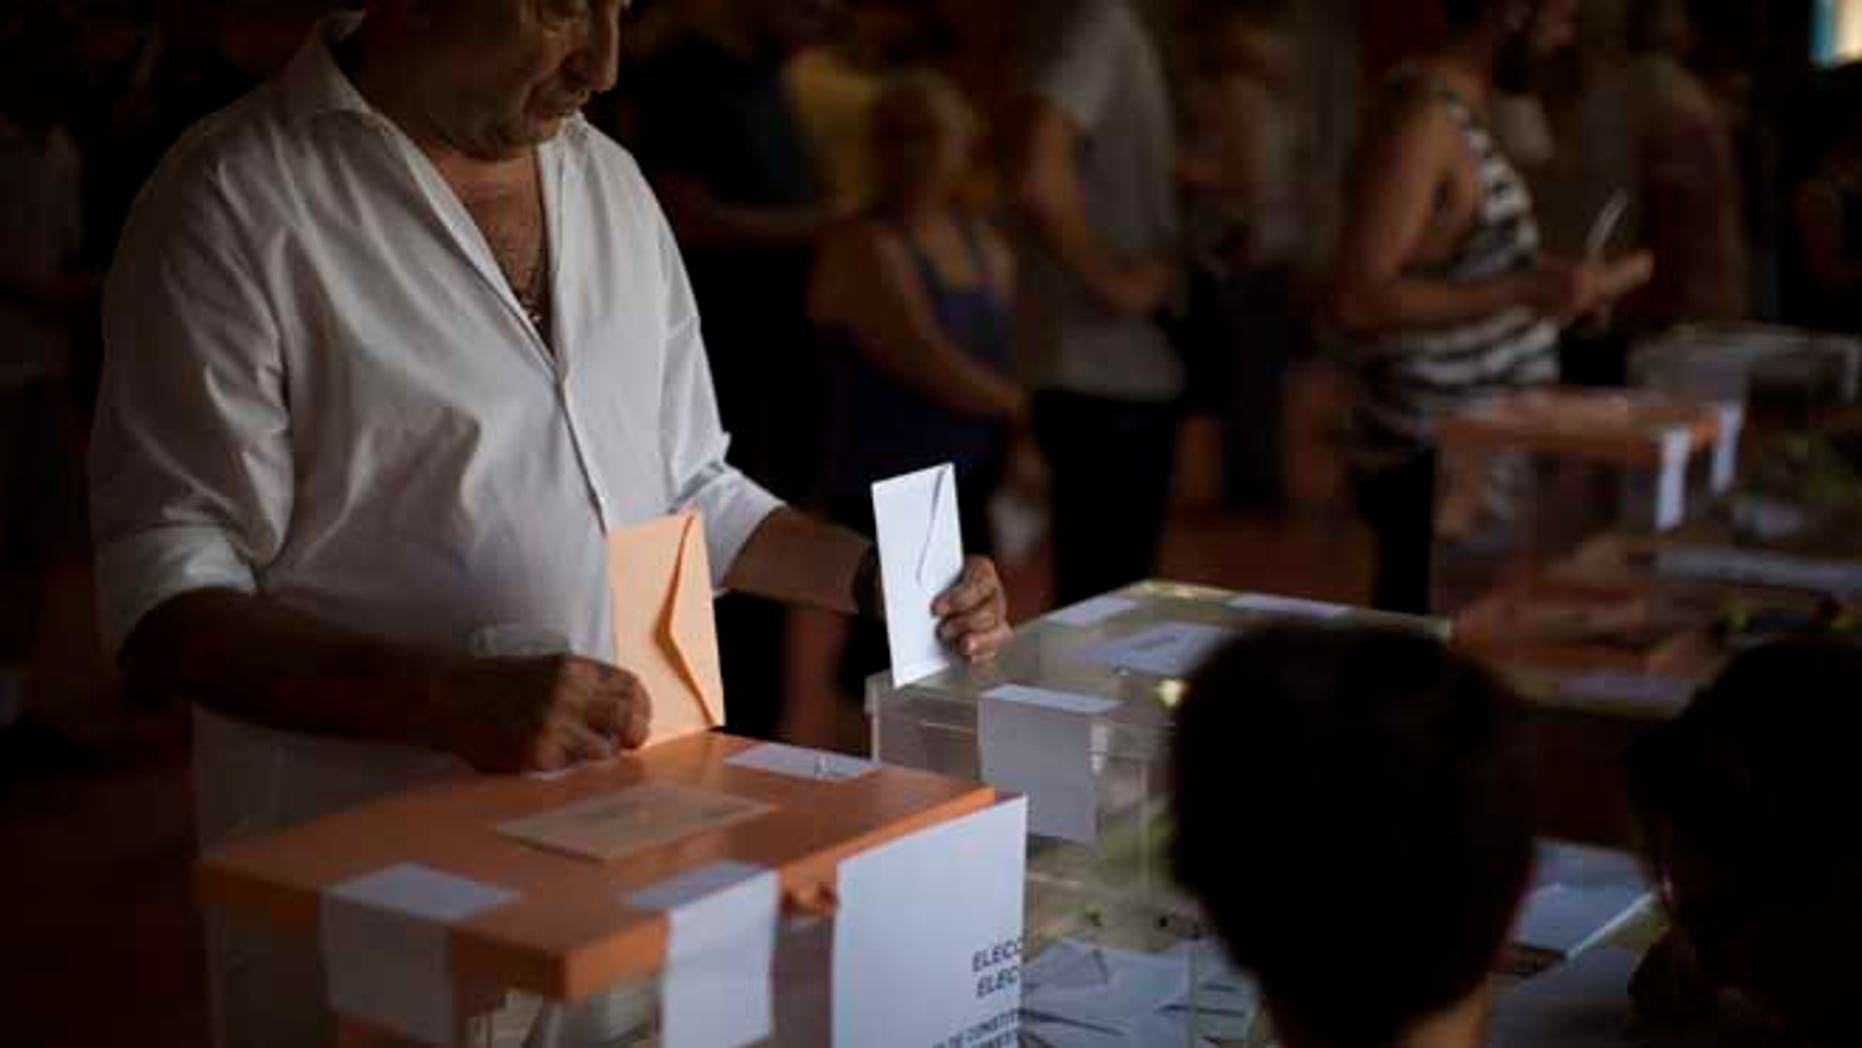 A man casts his vote for the national elections in Barcelona, Spain, Sunday. Spaniards voted Sunday in an unprecedented repeat election that aimed to break six months of political deadlock after a December ballot left the country without an elected government. (AP Photo/Emilio Morenatti)